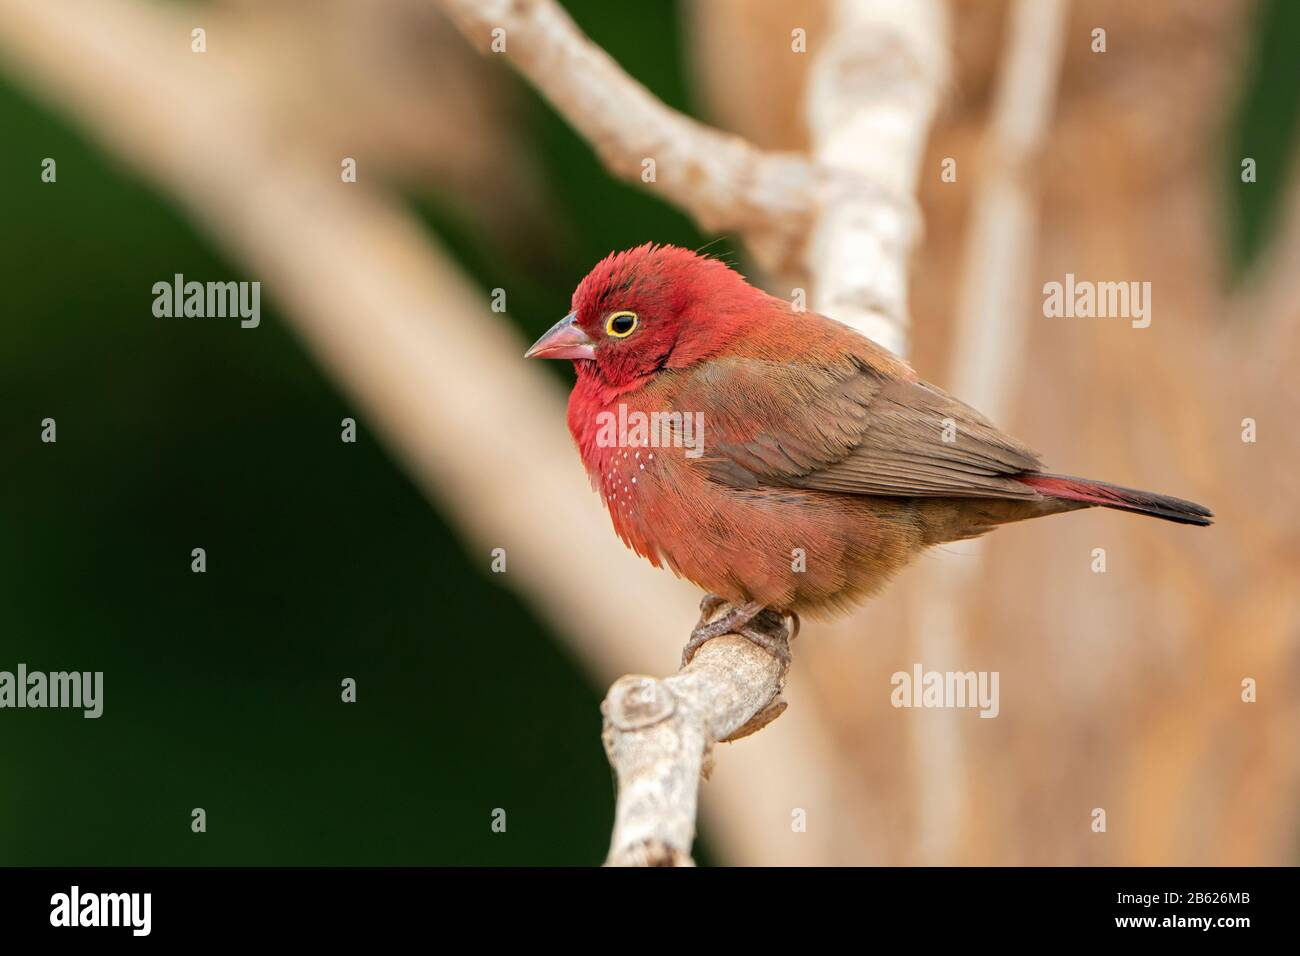 red-billed firefinch, Lagonosticta senegala, adult male perched on tree branch, Gambia Stock Photo